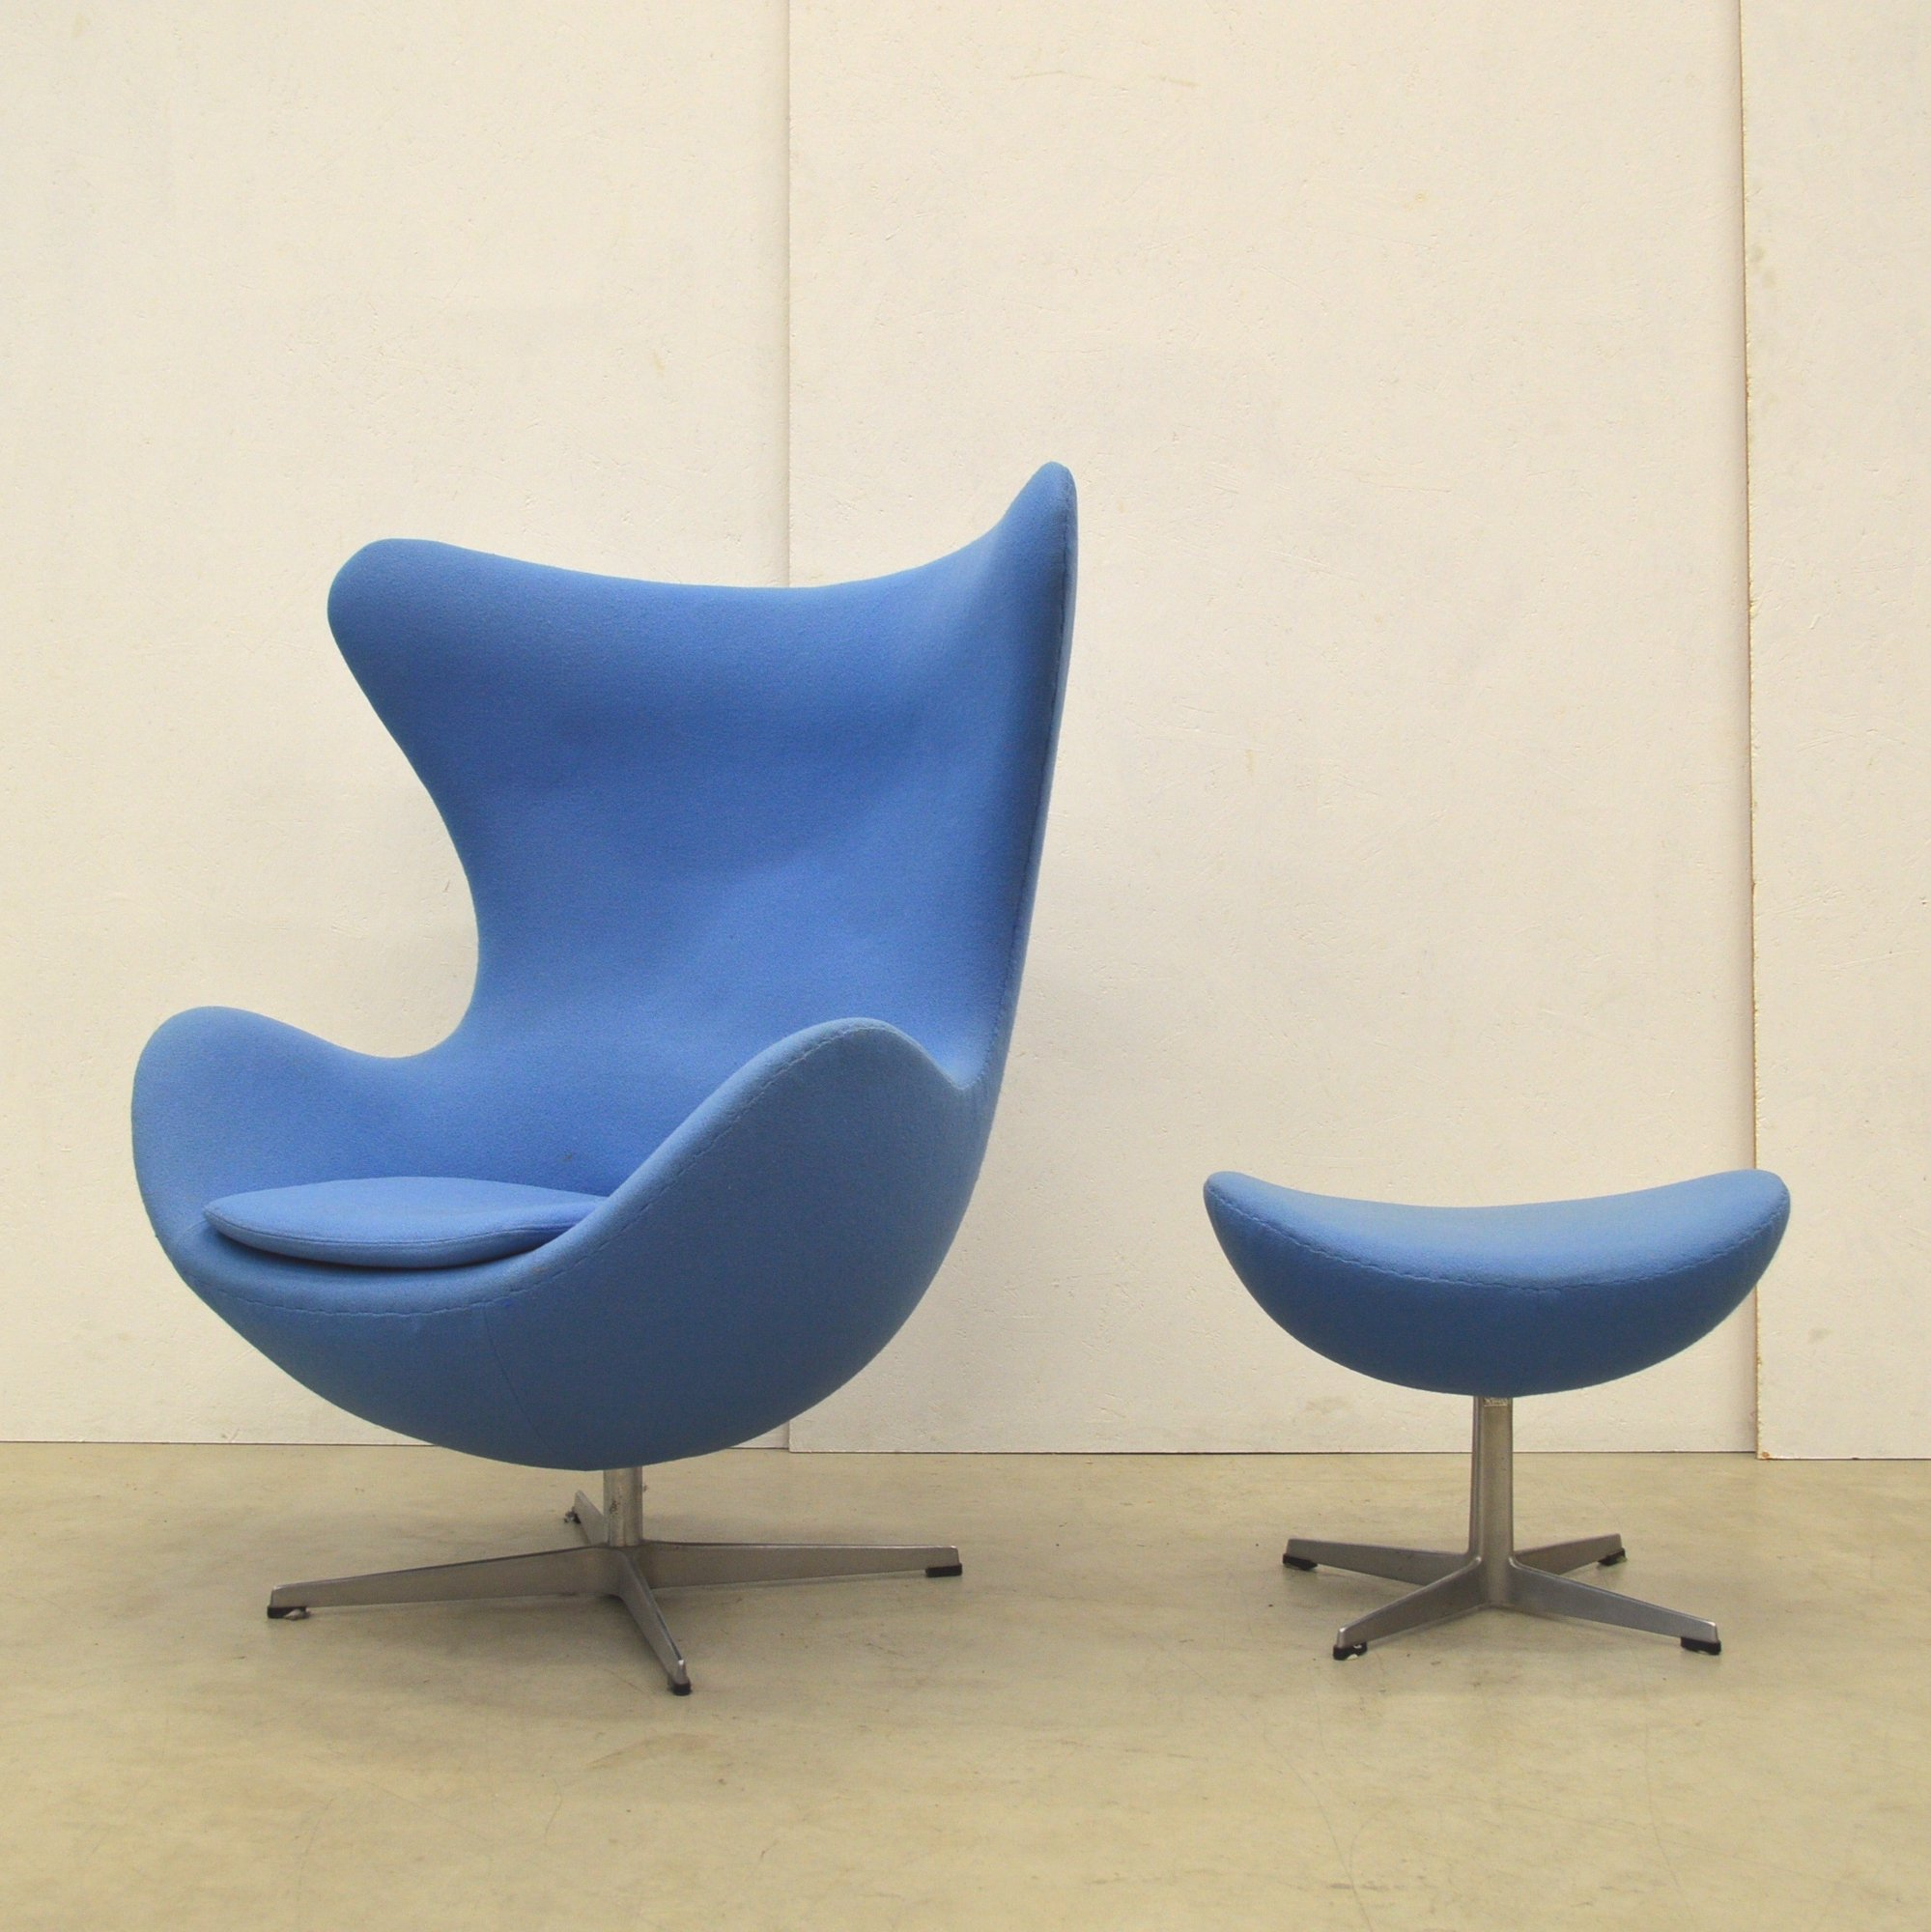 The Egg Chair Arne Jacobsen Egg Lounge Chair From The Seventies By Arne Jacobsen For